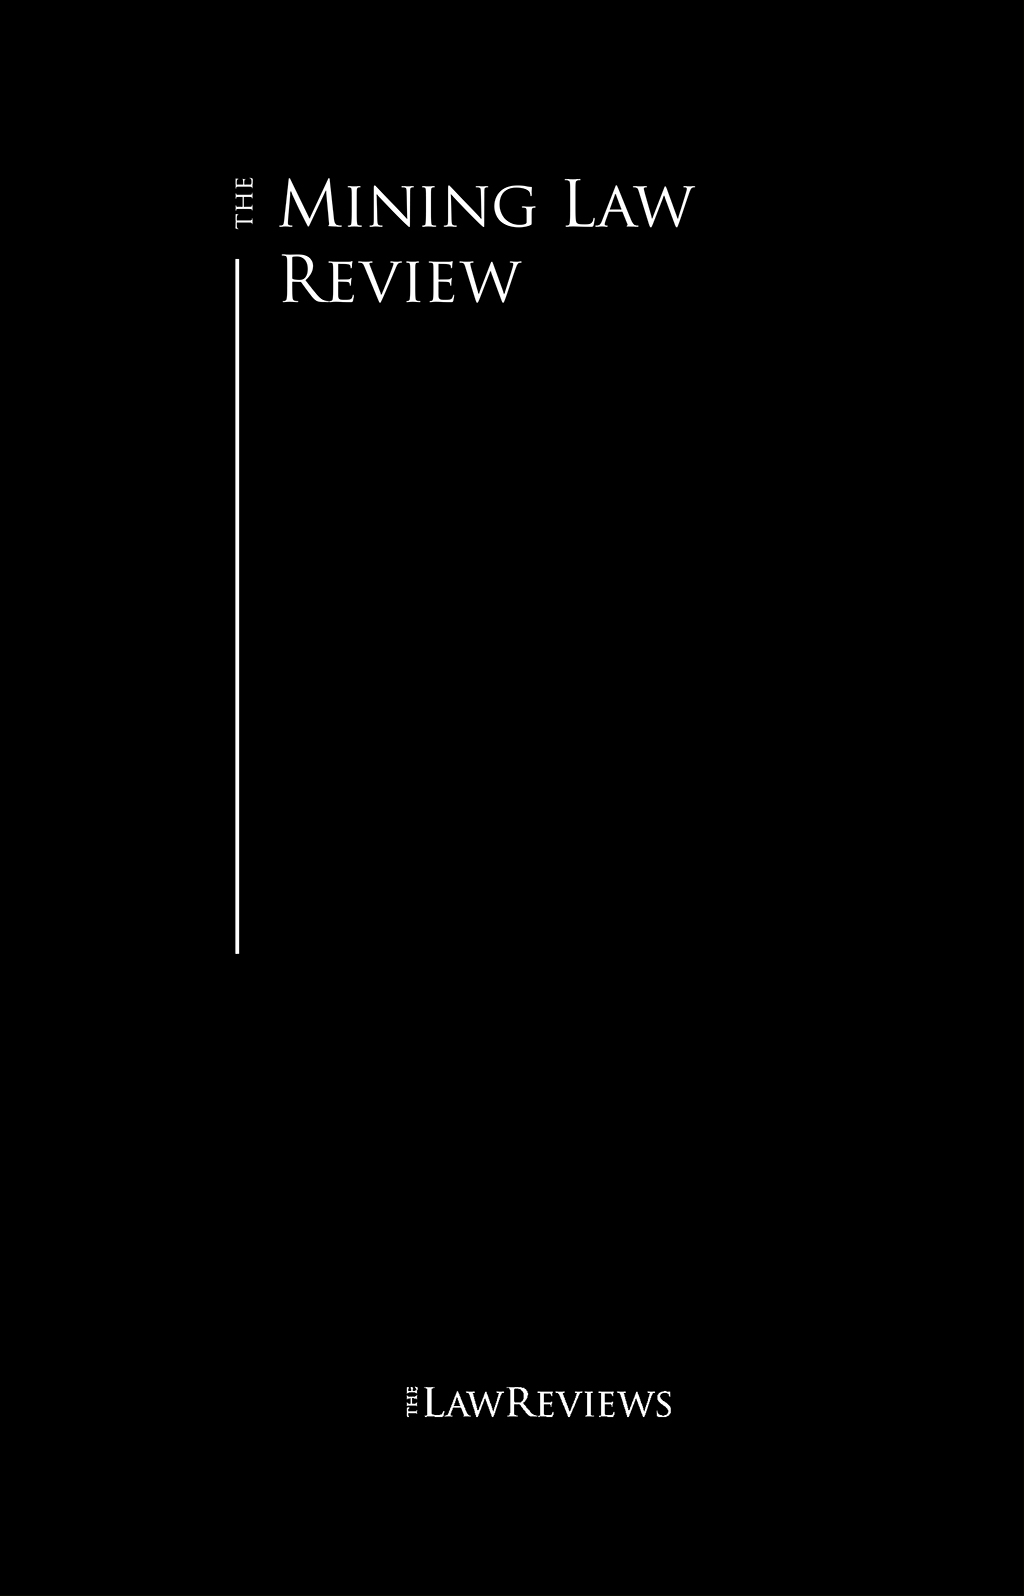 The Mining Law Review